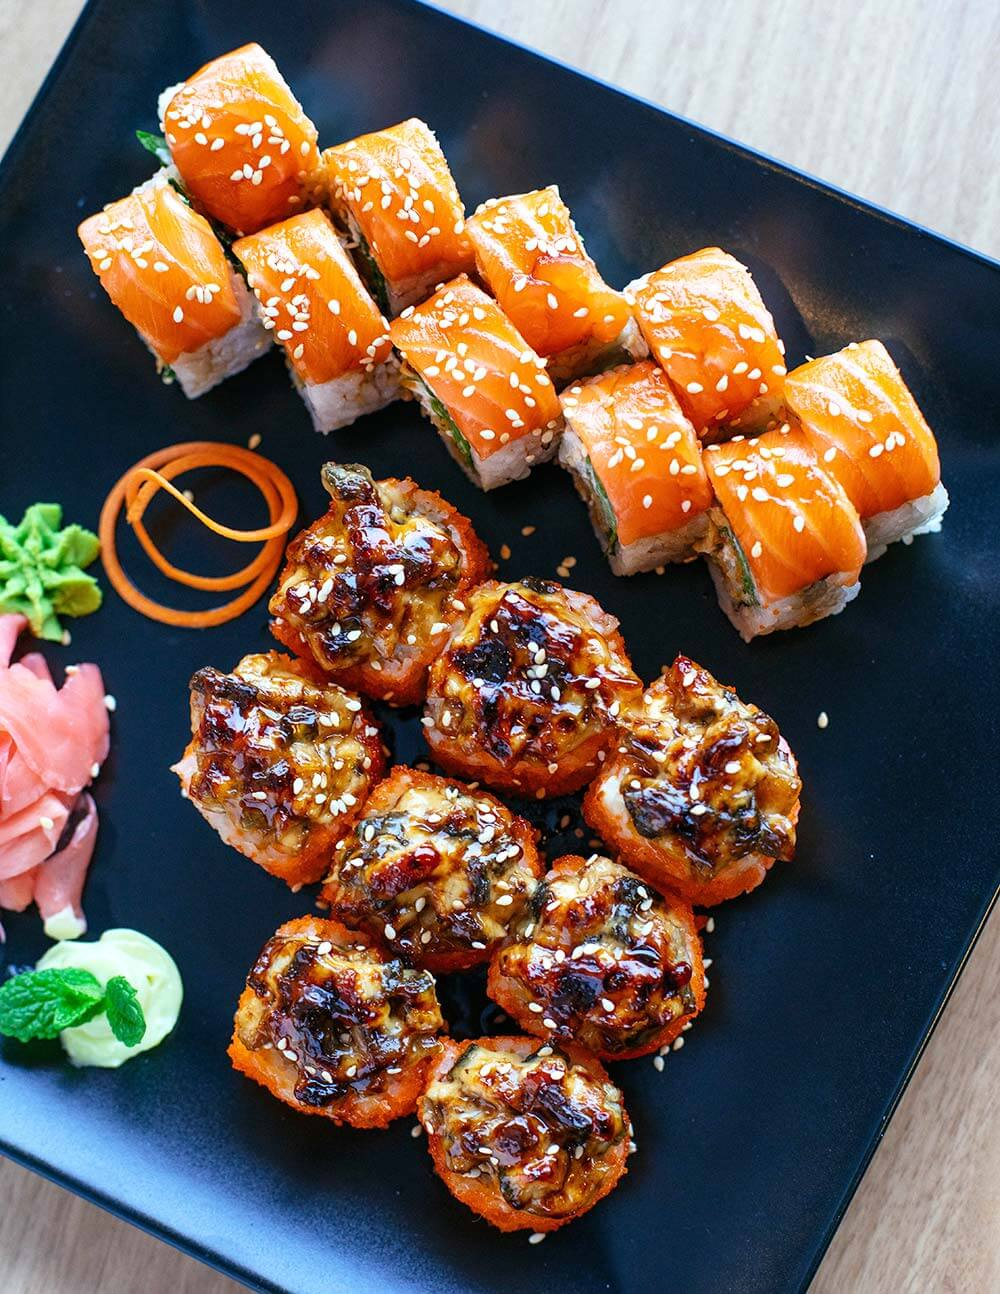 Assorted amazing japanese cuisine-healthy food options eat savvy